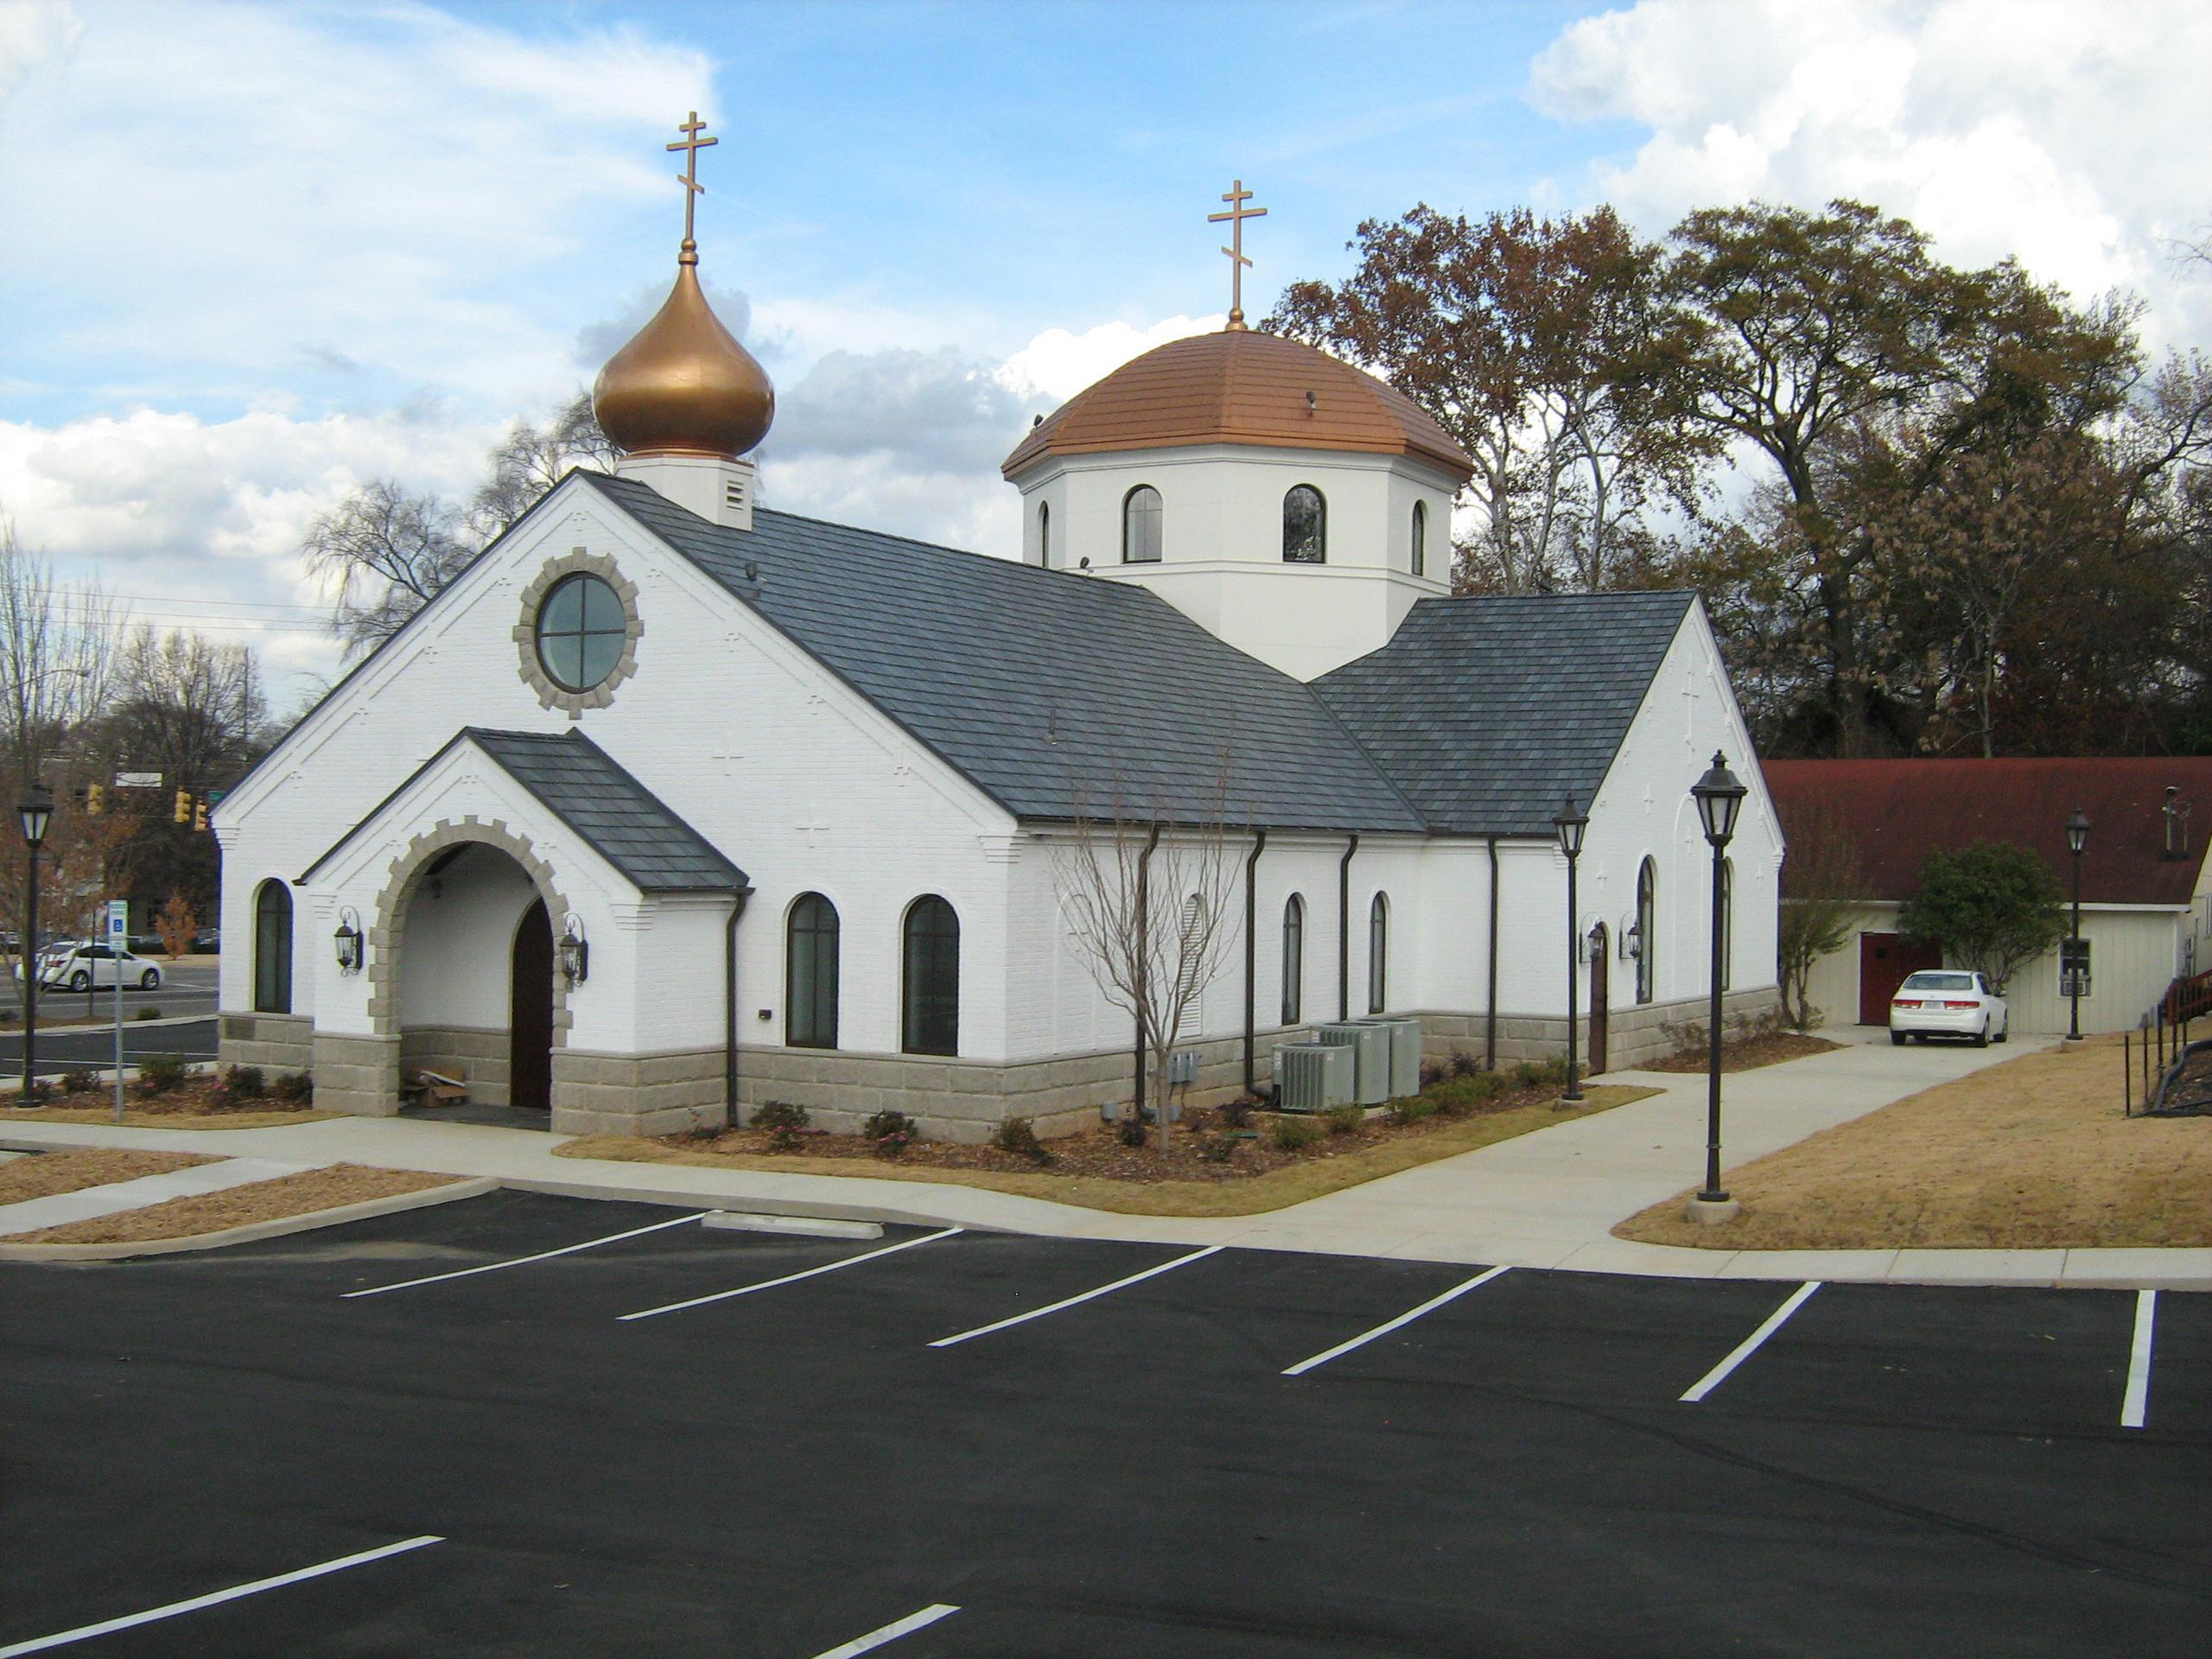 The Orthodox Church in Birmingham, Alabama selected EDCO's Arrowline roofing in both both Slate and Shake panels to give it a distinctive look that meets the existing architecture of the structure.